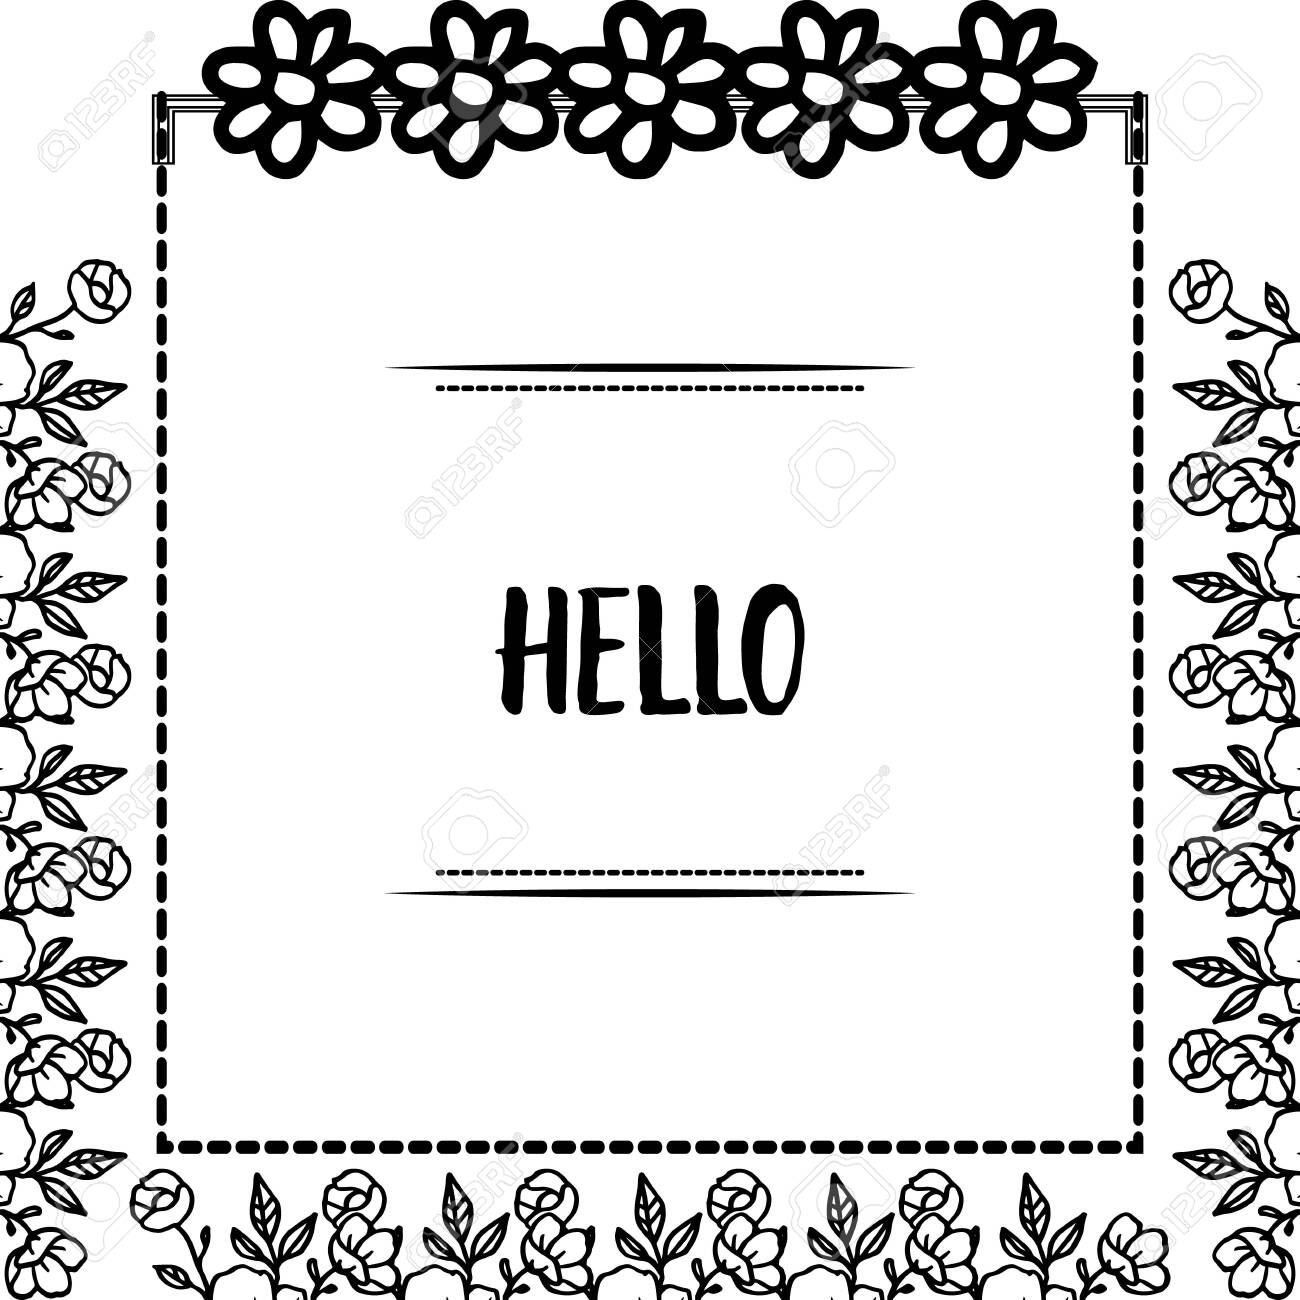 Hello greeting with floral frame - 144131231